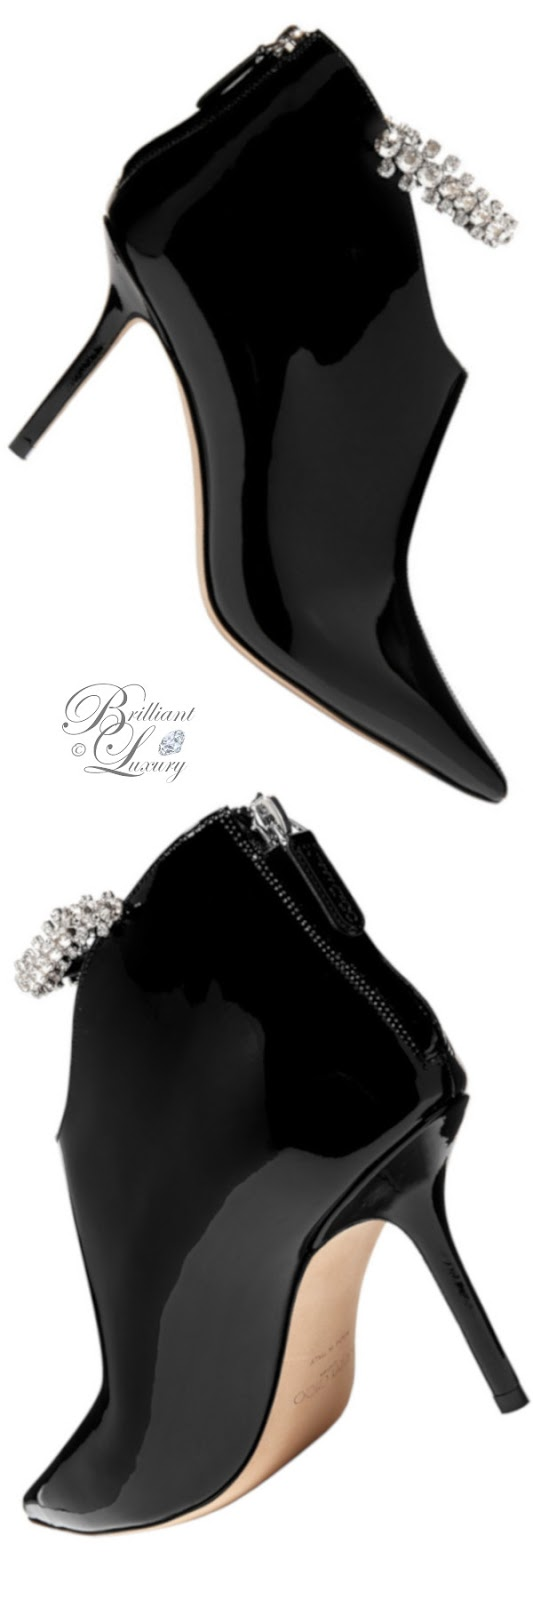 Brilliant Luxury ♦ Jimmy Choo Blaize crystal-embellished patent-leather ankle boots